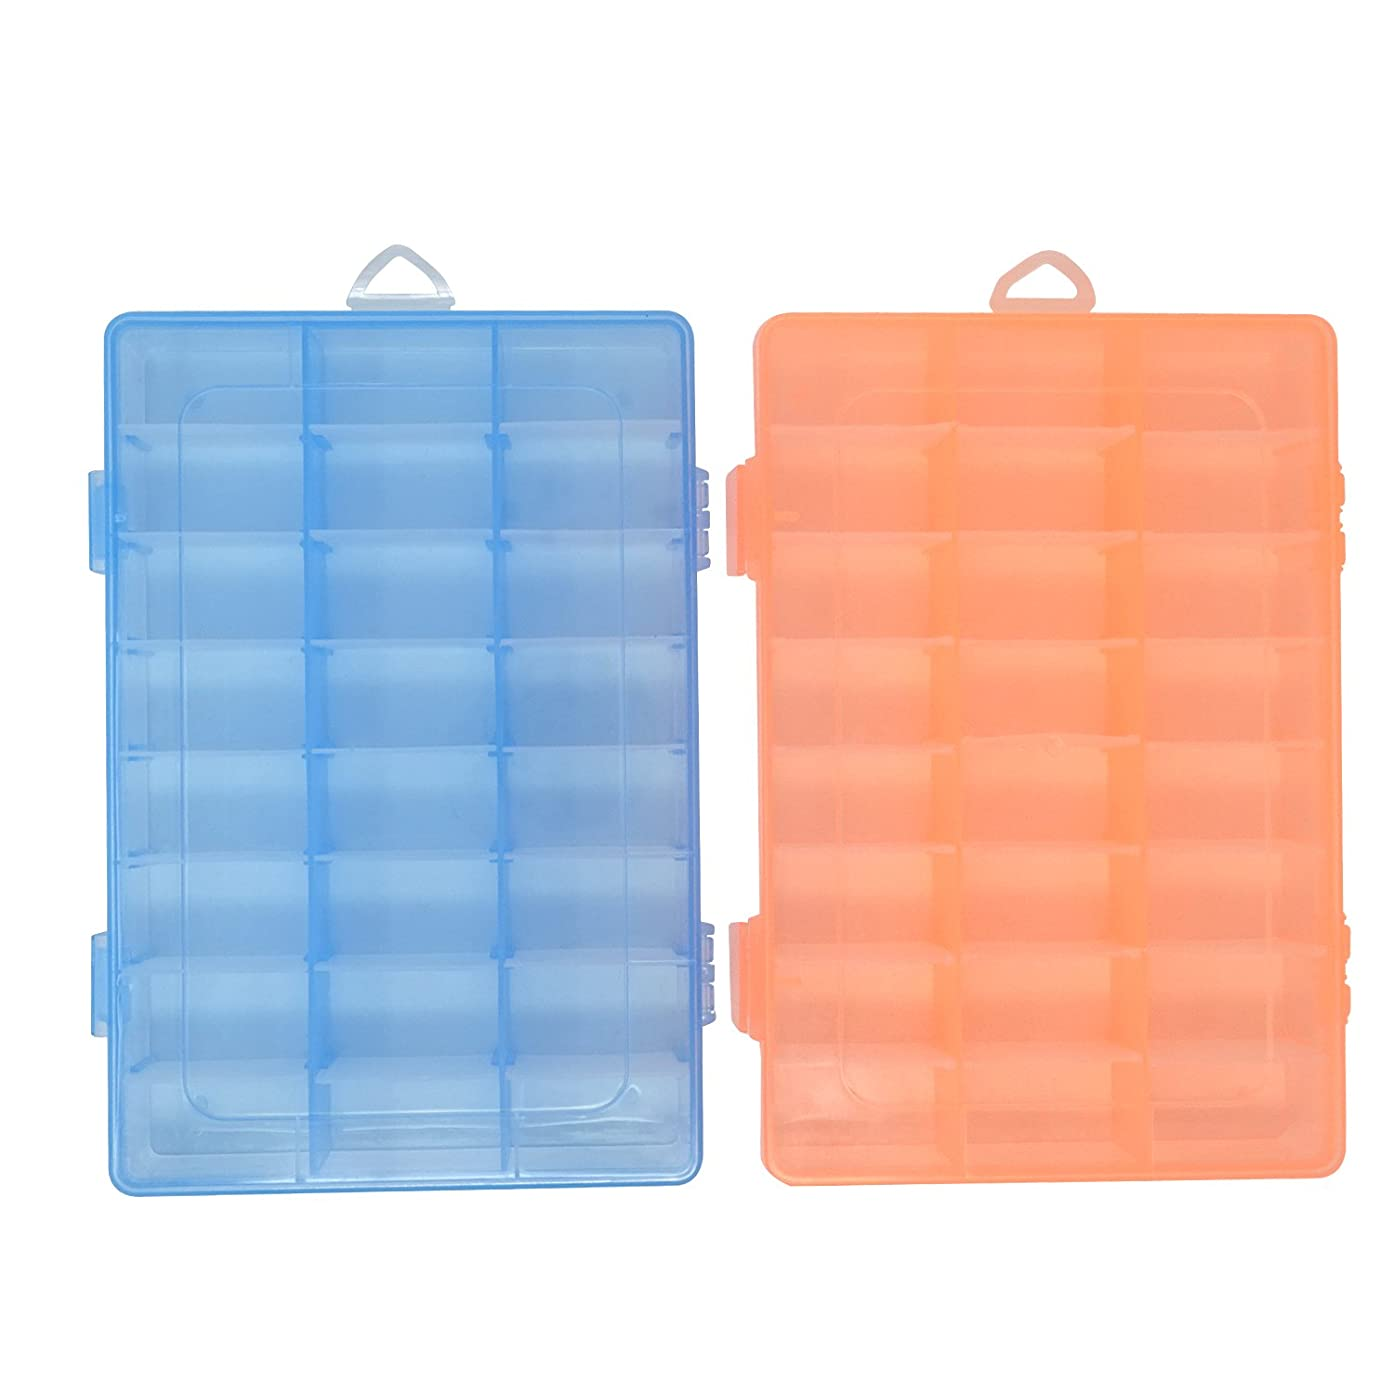 HONBAY 2PCS 24 Grid Transparent Plastic Jewelry Box Organizer Storage Container with Adjustable Dividers for Sorting Earrings, Rings, Beads and Other Mini Goods (Blue+Orange)